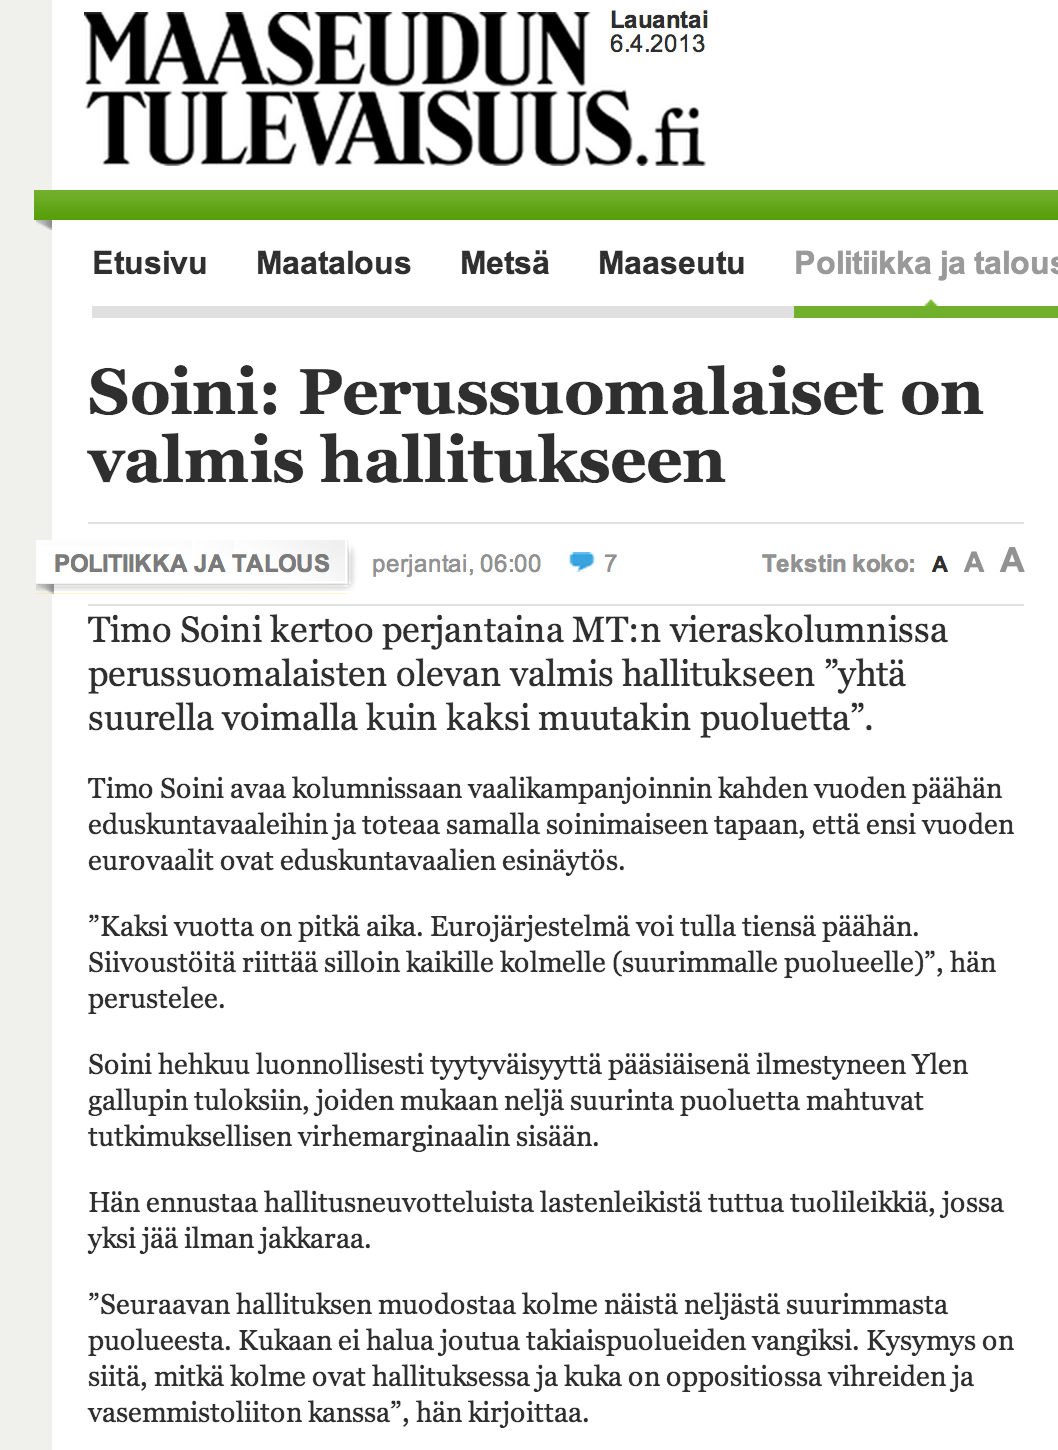 Maaseudun Tulevaisuus: Soini sees himself forming government after the 2015 elections